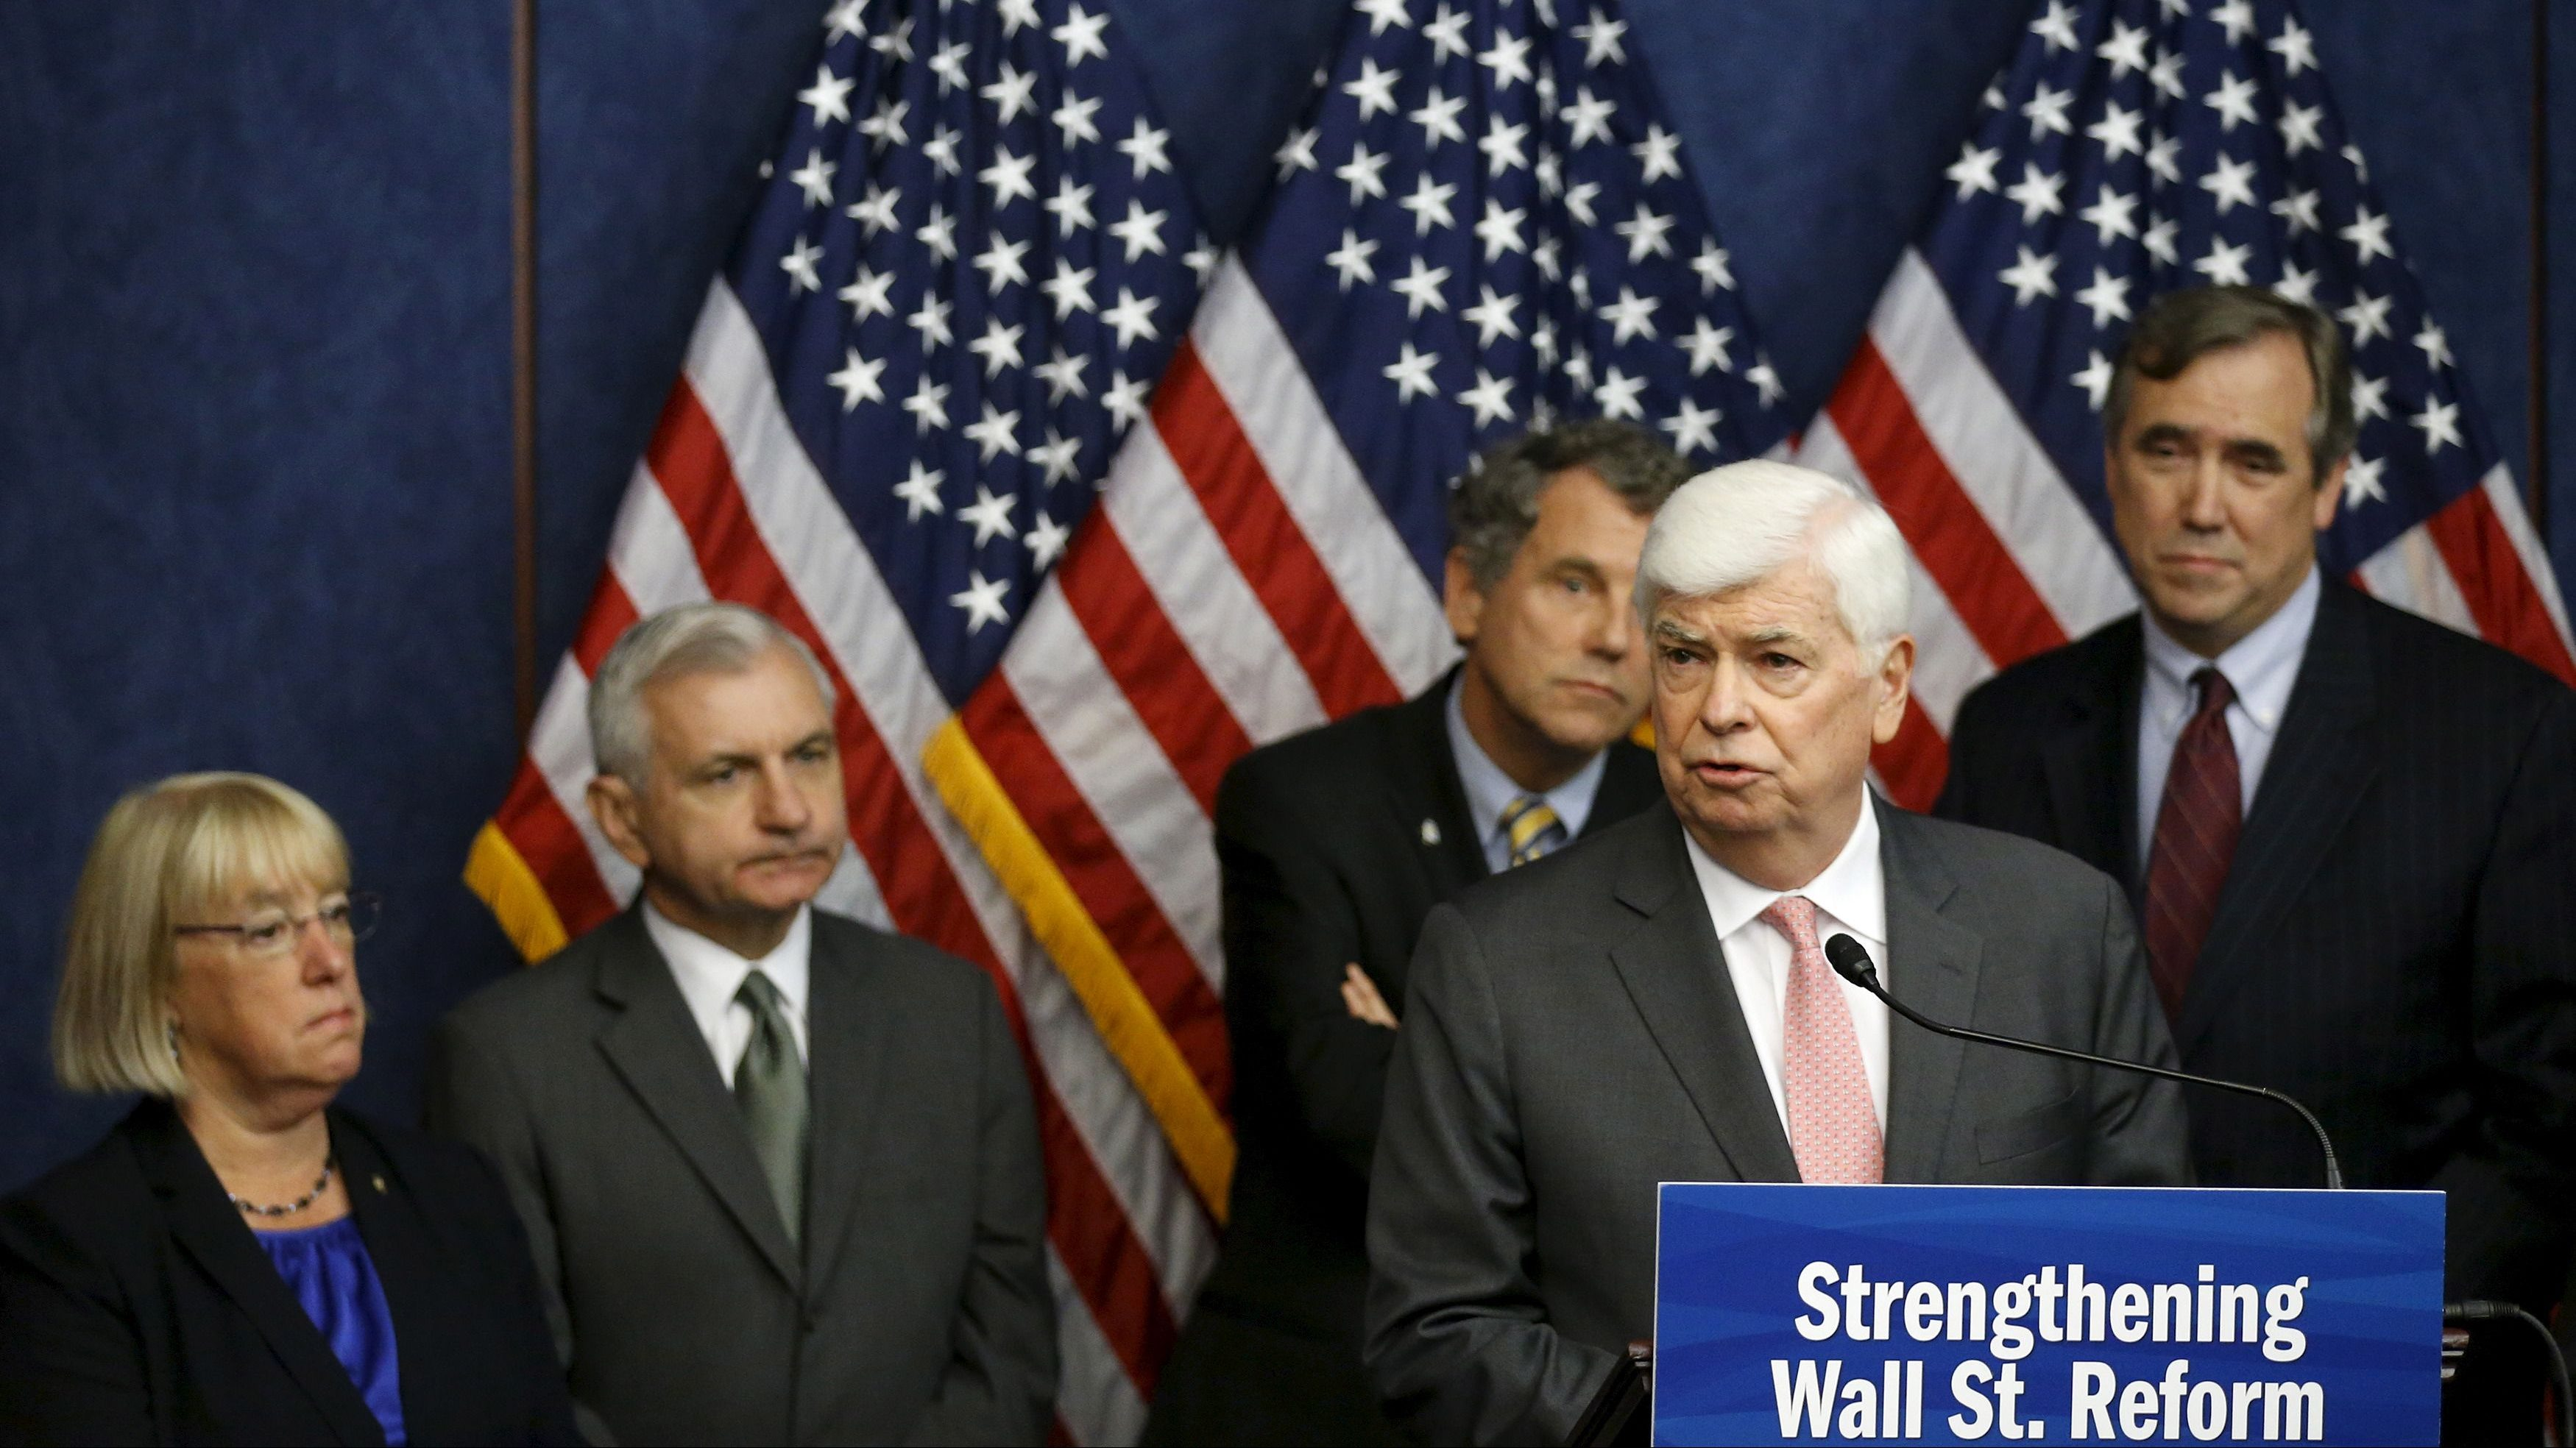 Dodd speaks at a news conference marking the fifth anniversary of passing of the Dodd-Frank Wall Street reform law, on Capitol Hill in Washington